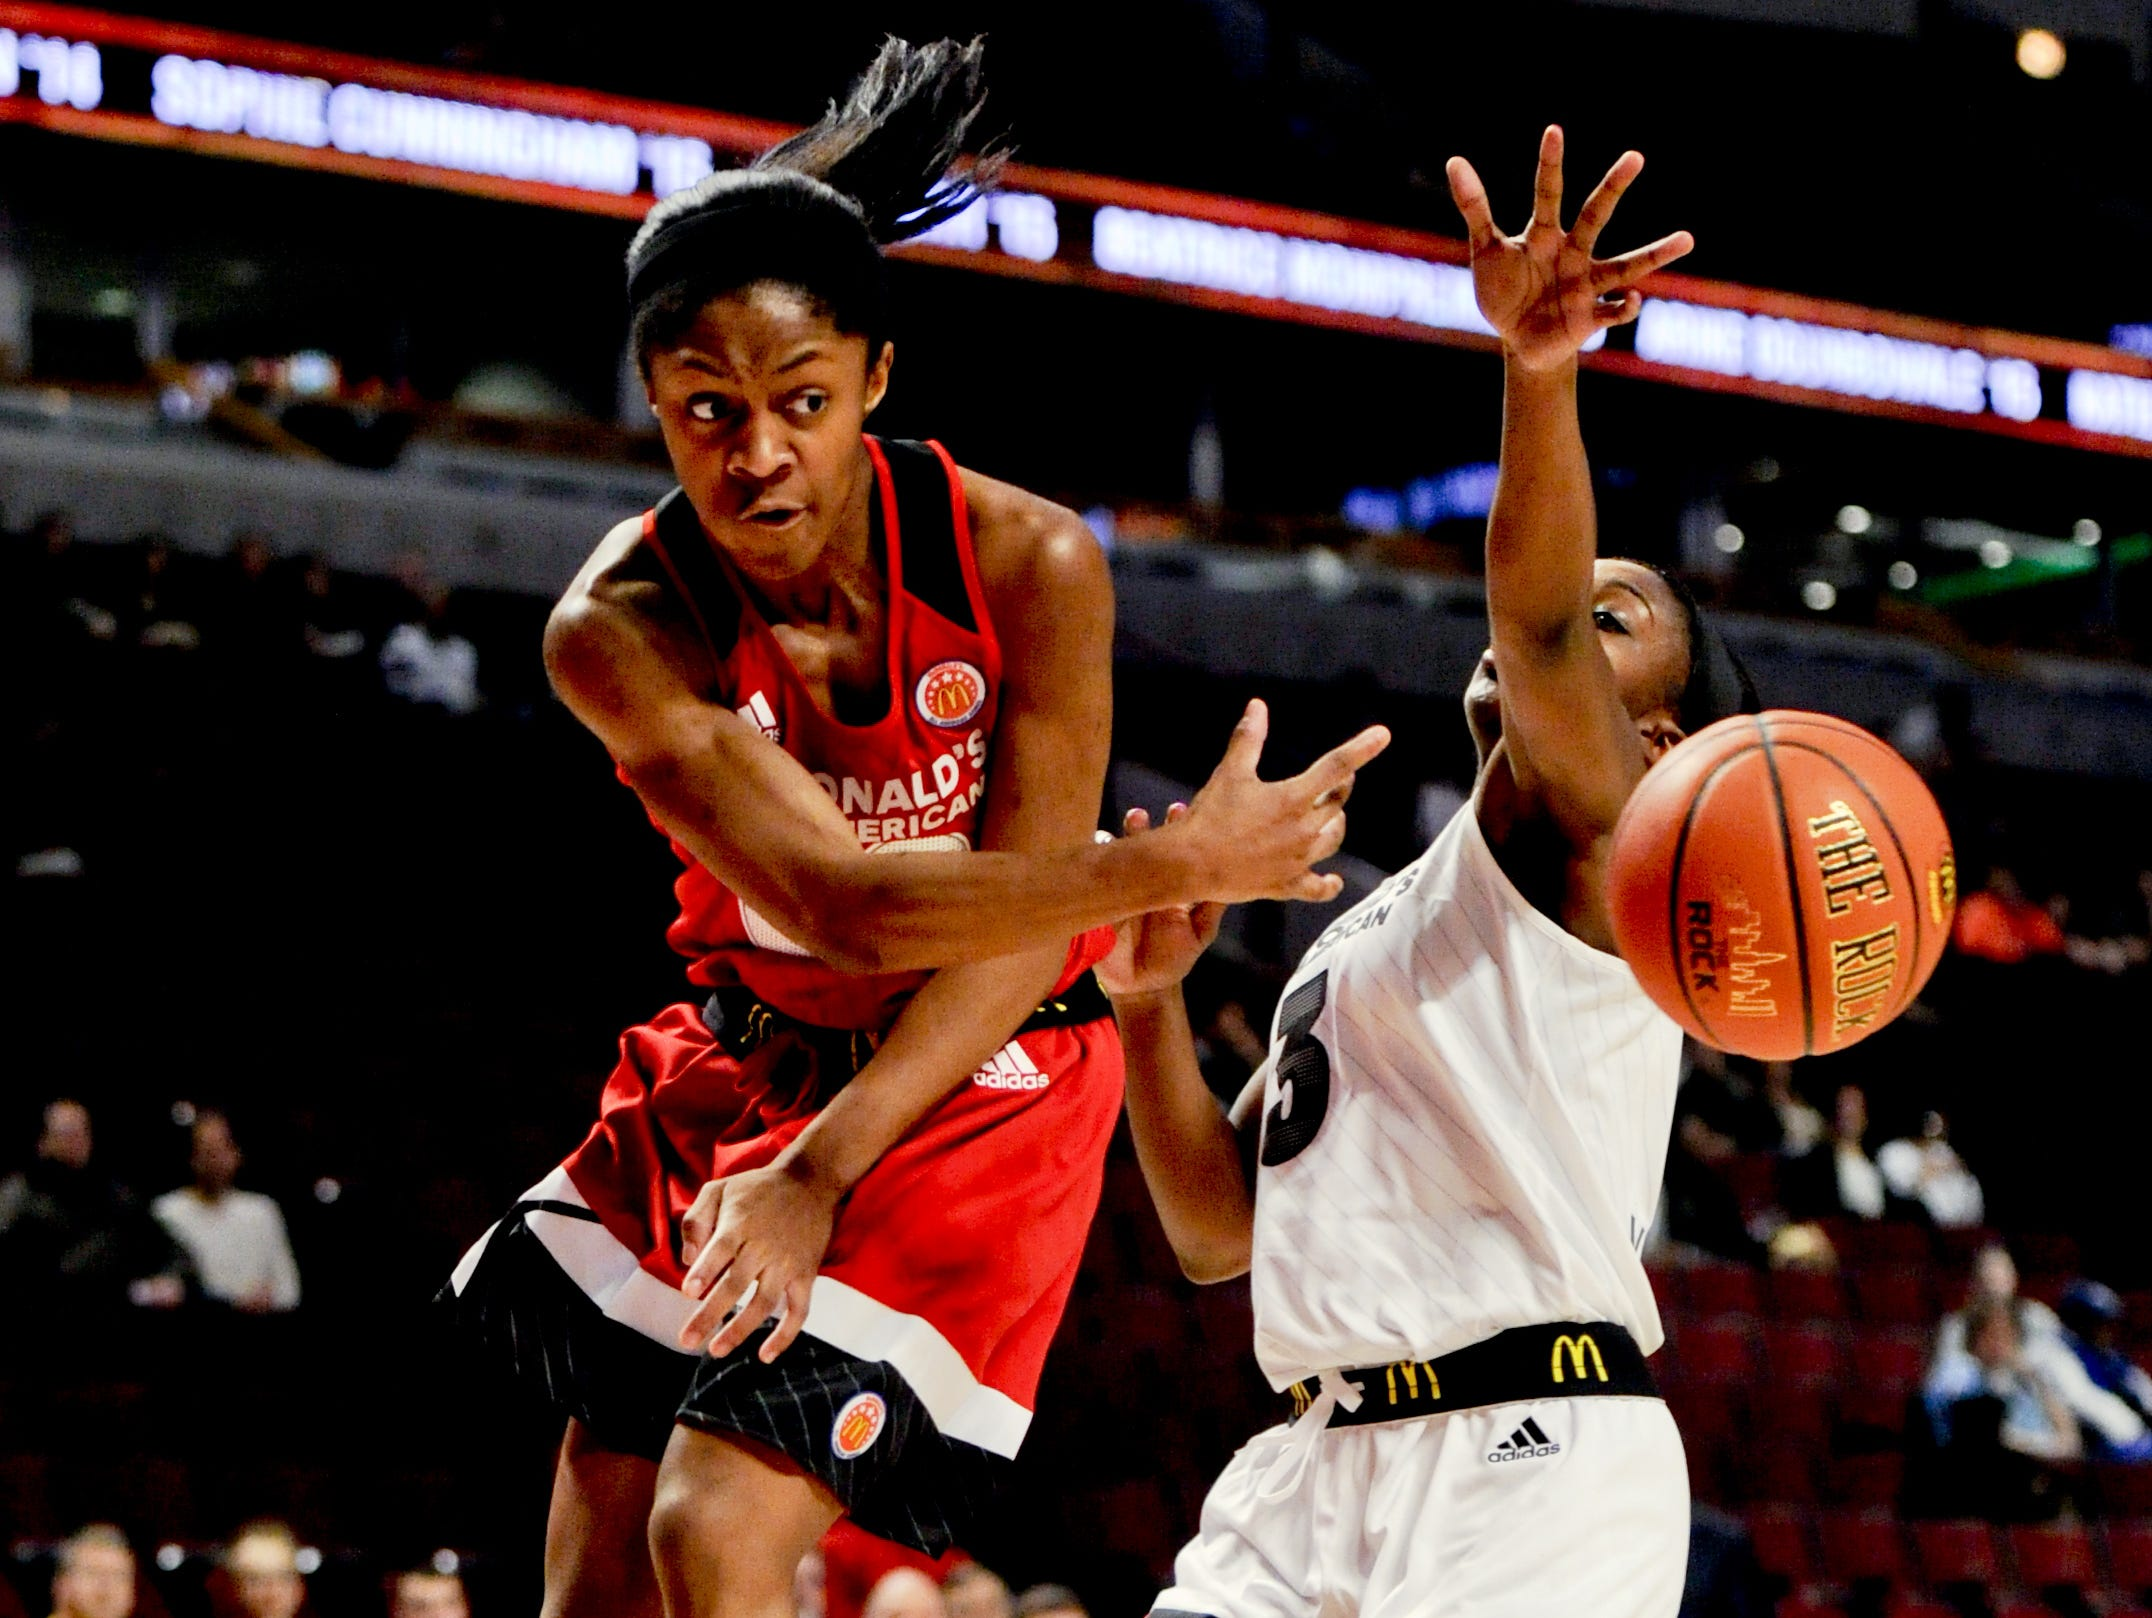 Blackman's Crystal Dangerfield, left, passes the ball in the McDonald's All-American Game on Wednesday in Chicago.